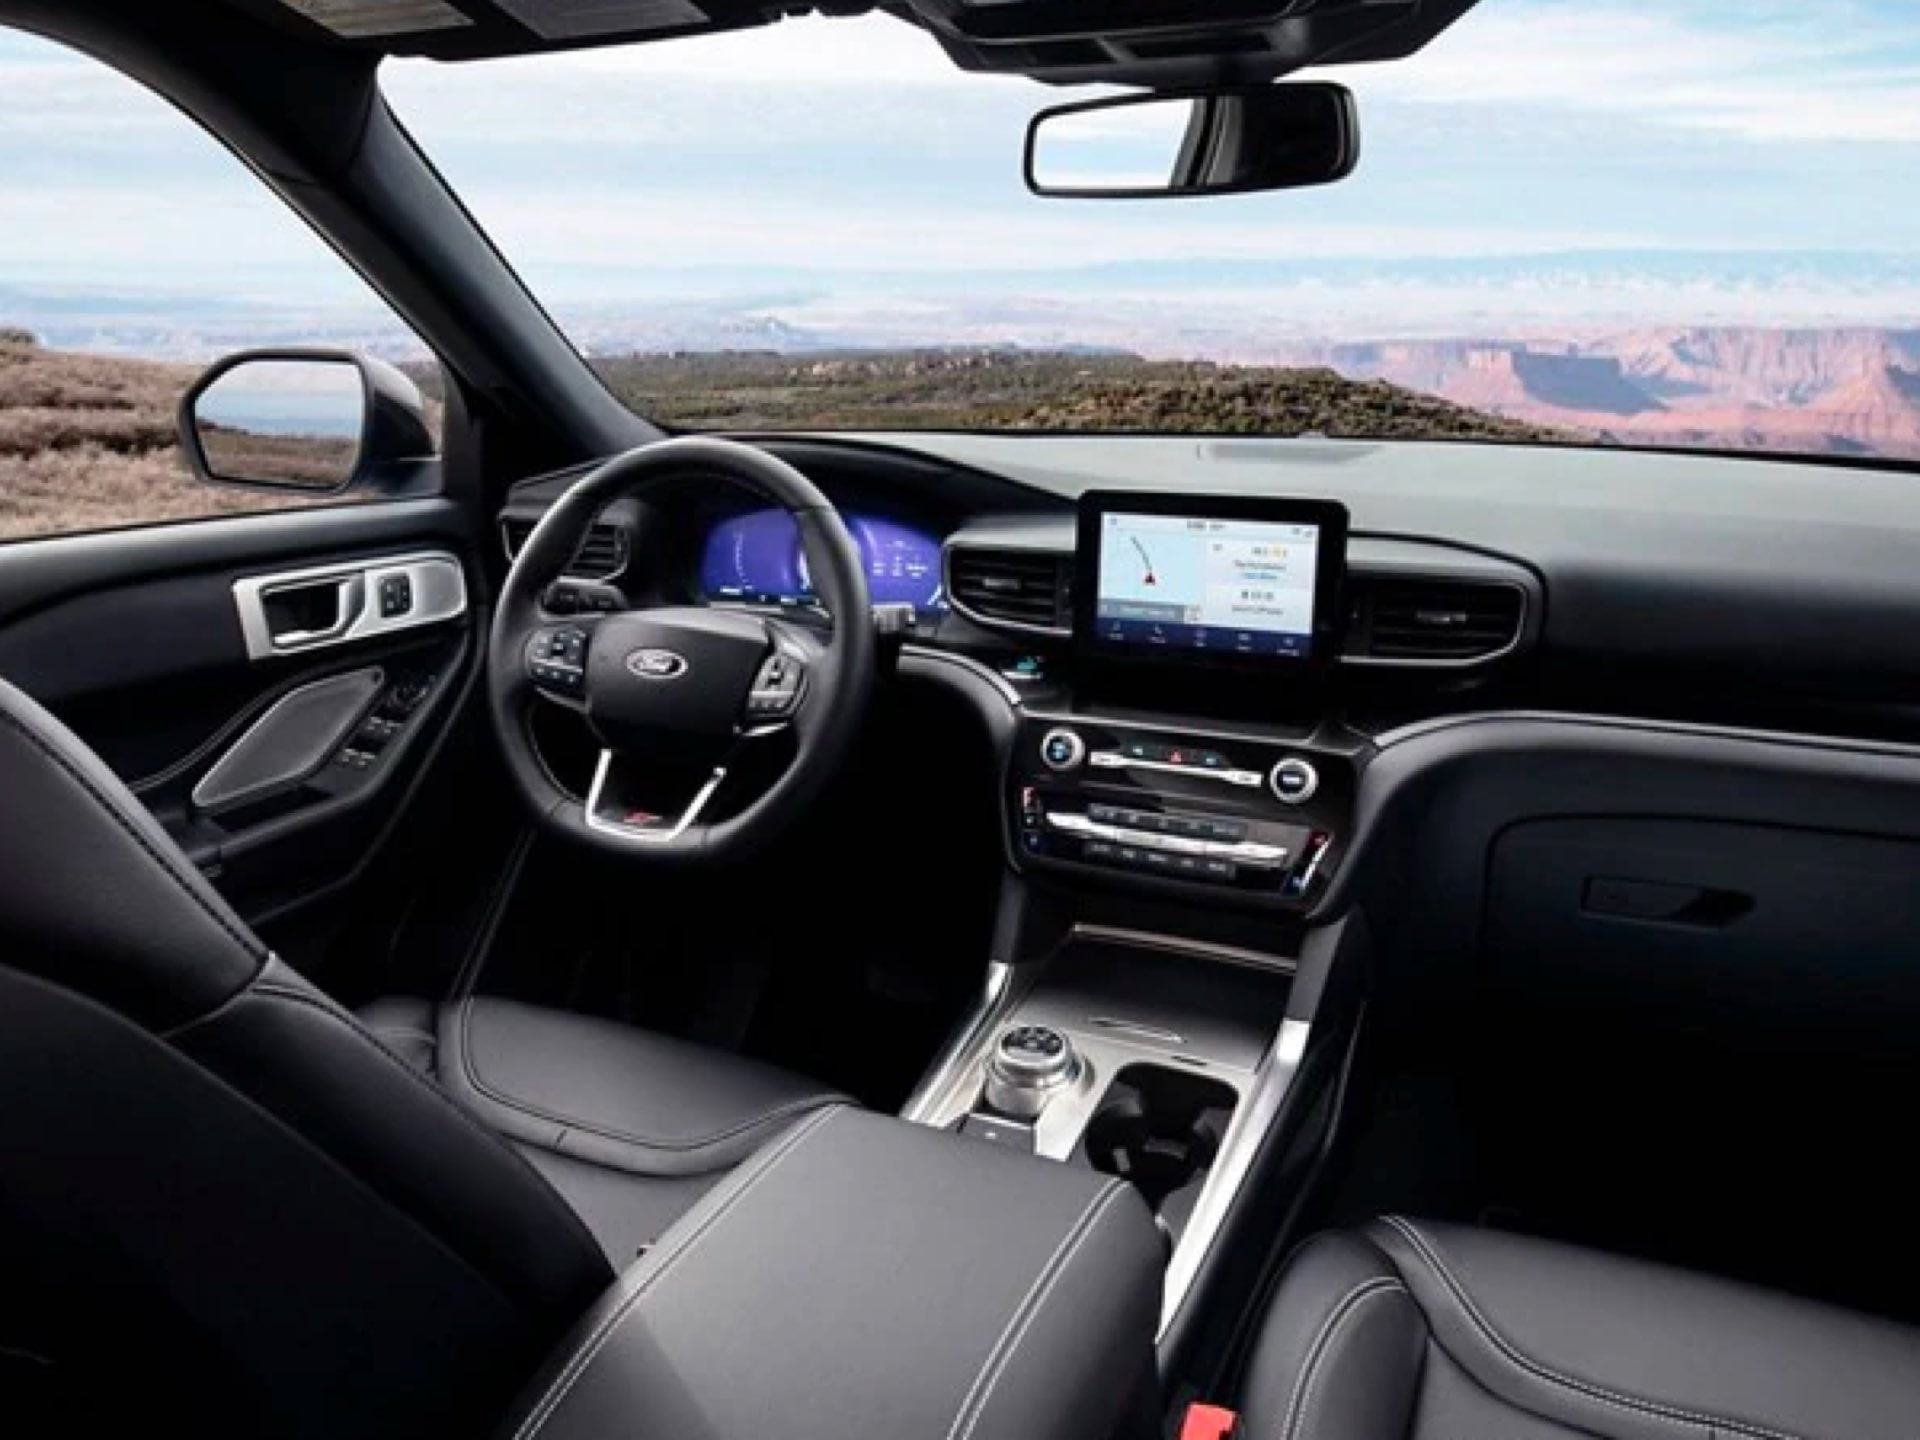 Interior view of a 2021 Ford Explorer ST